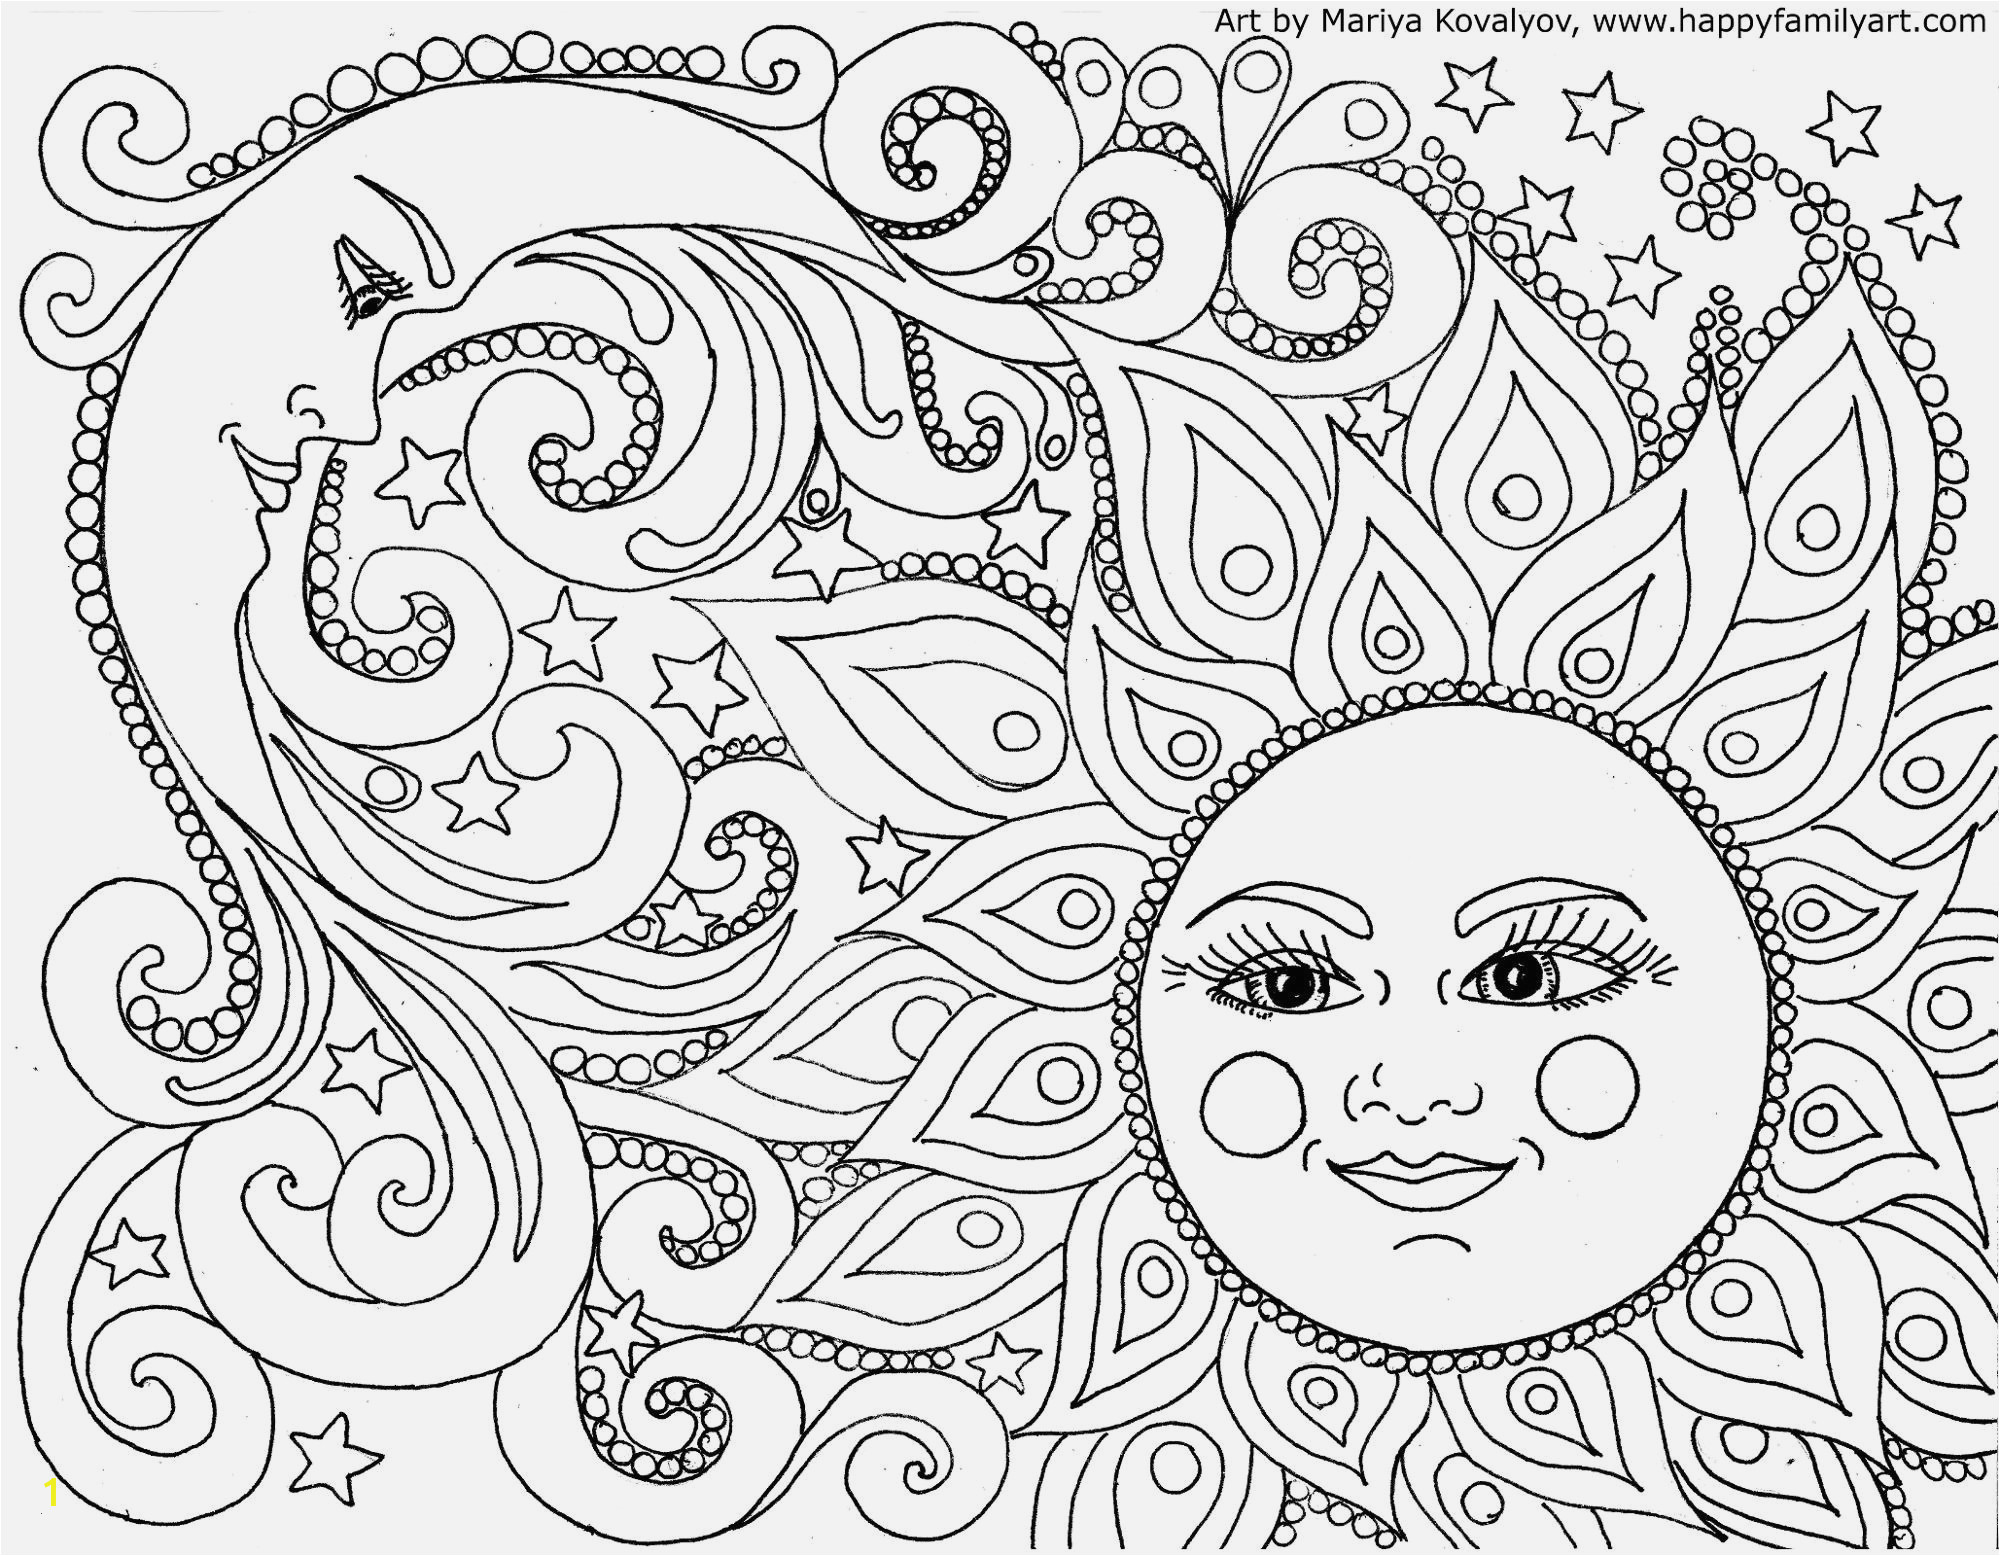 Funny Coloring Pages for Adults Printable Coloring Pages Adult Coloring Book Pages Beautiful Funny Adult Coloring Books